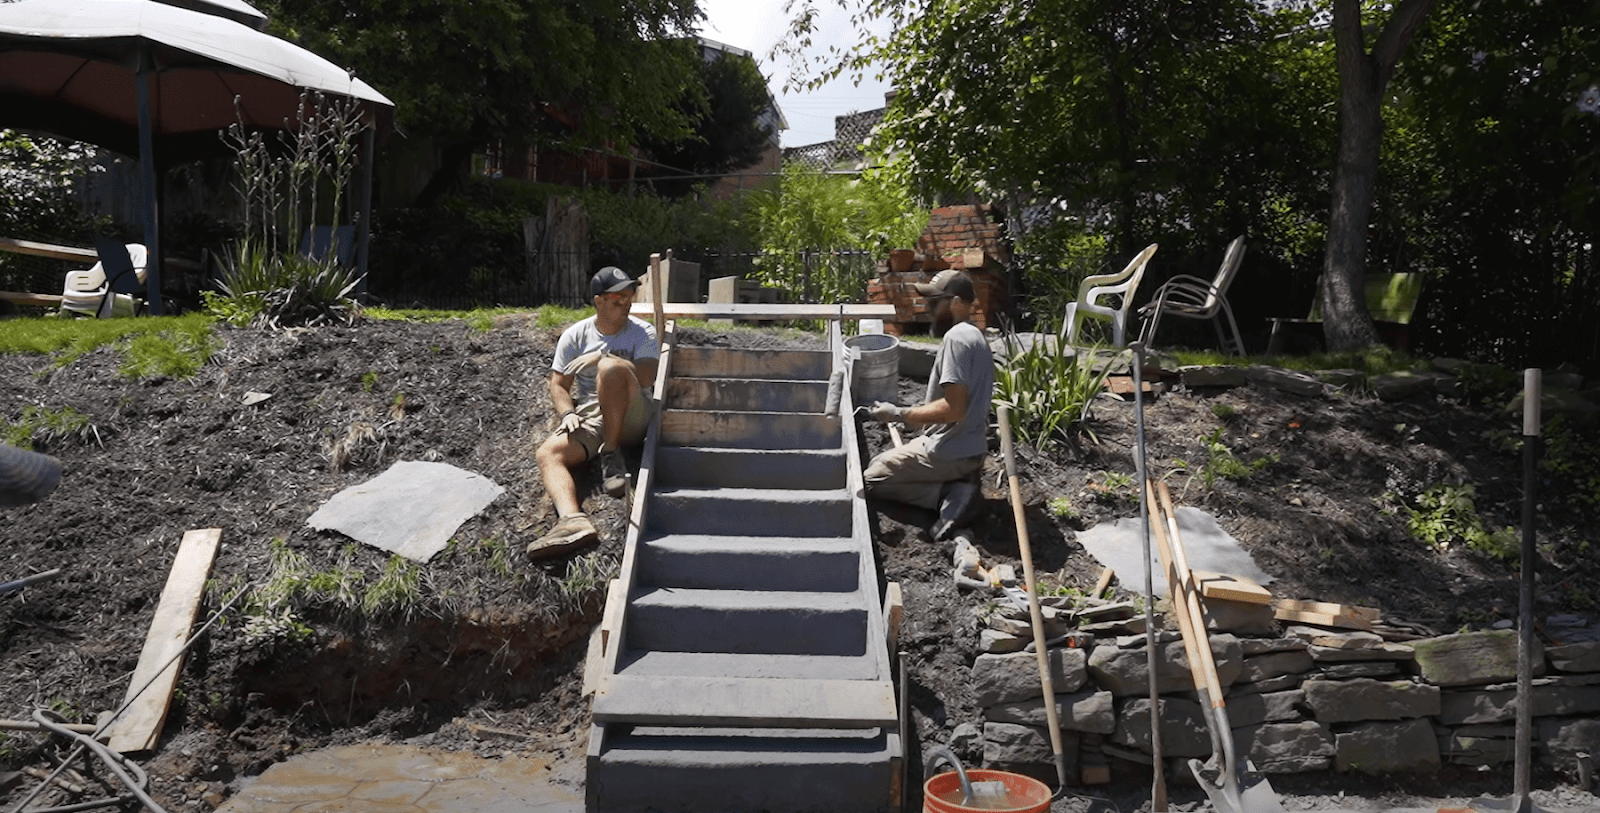 Sam and Jordan working on the concrete stairs